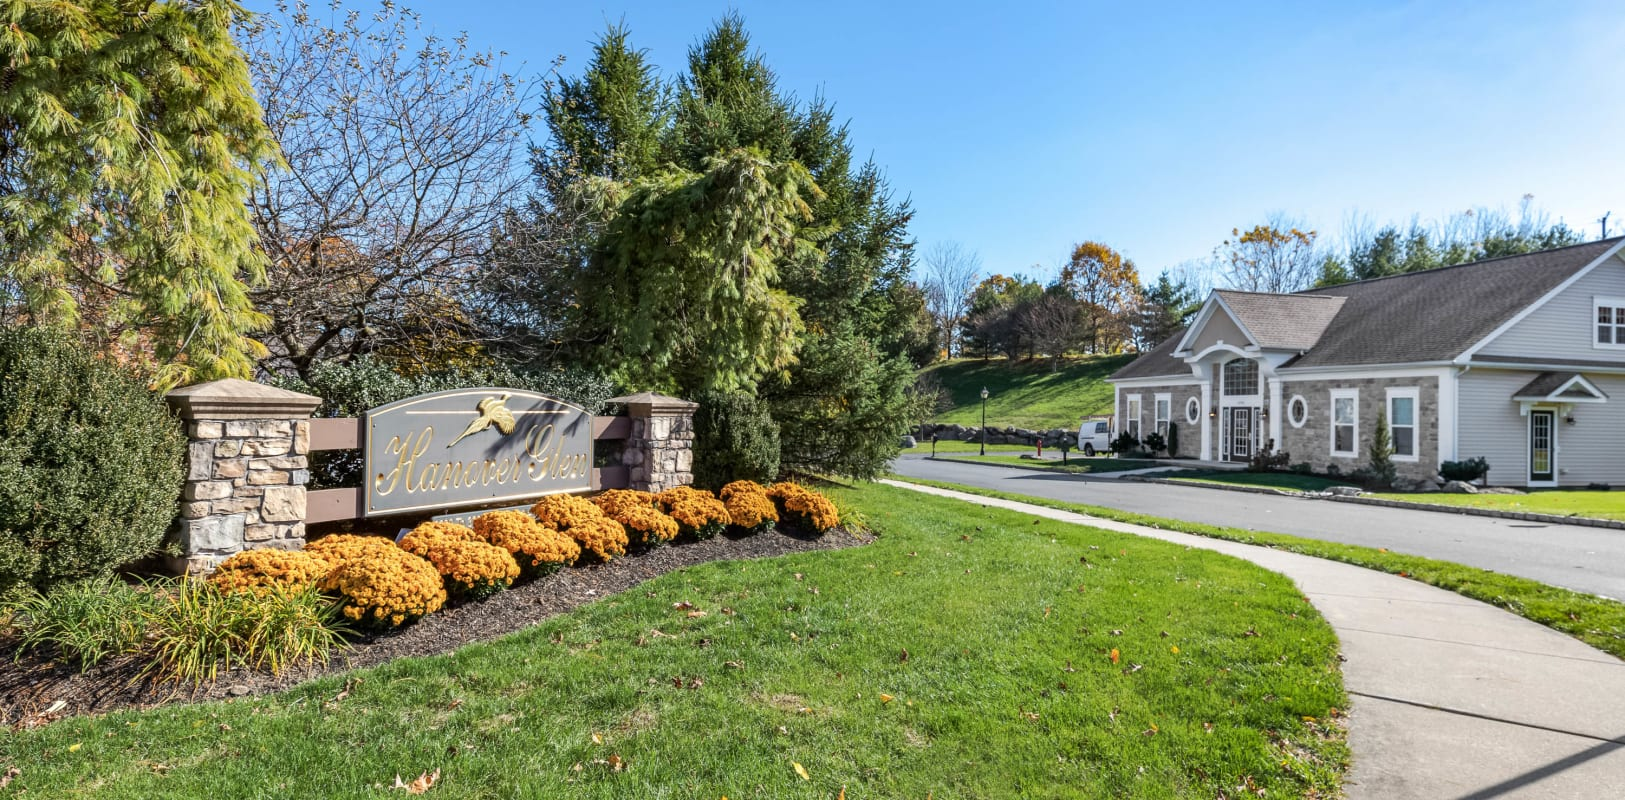 Our monument sign welcoming residents and their guests to Hanover Glen in Bethlehem, Pennsylvania